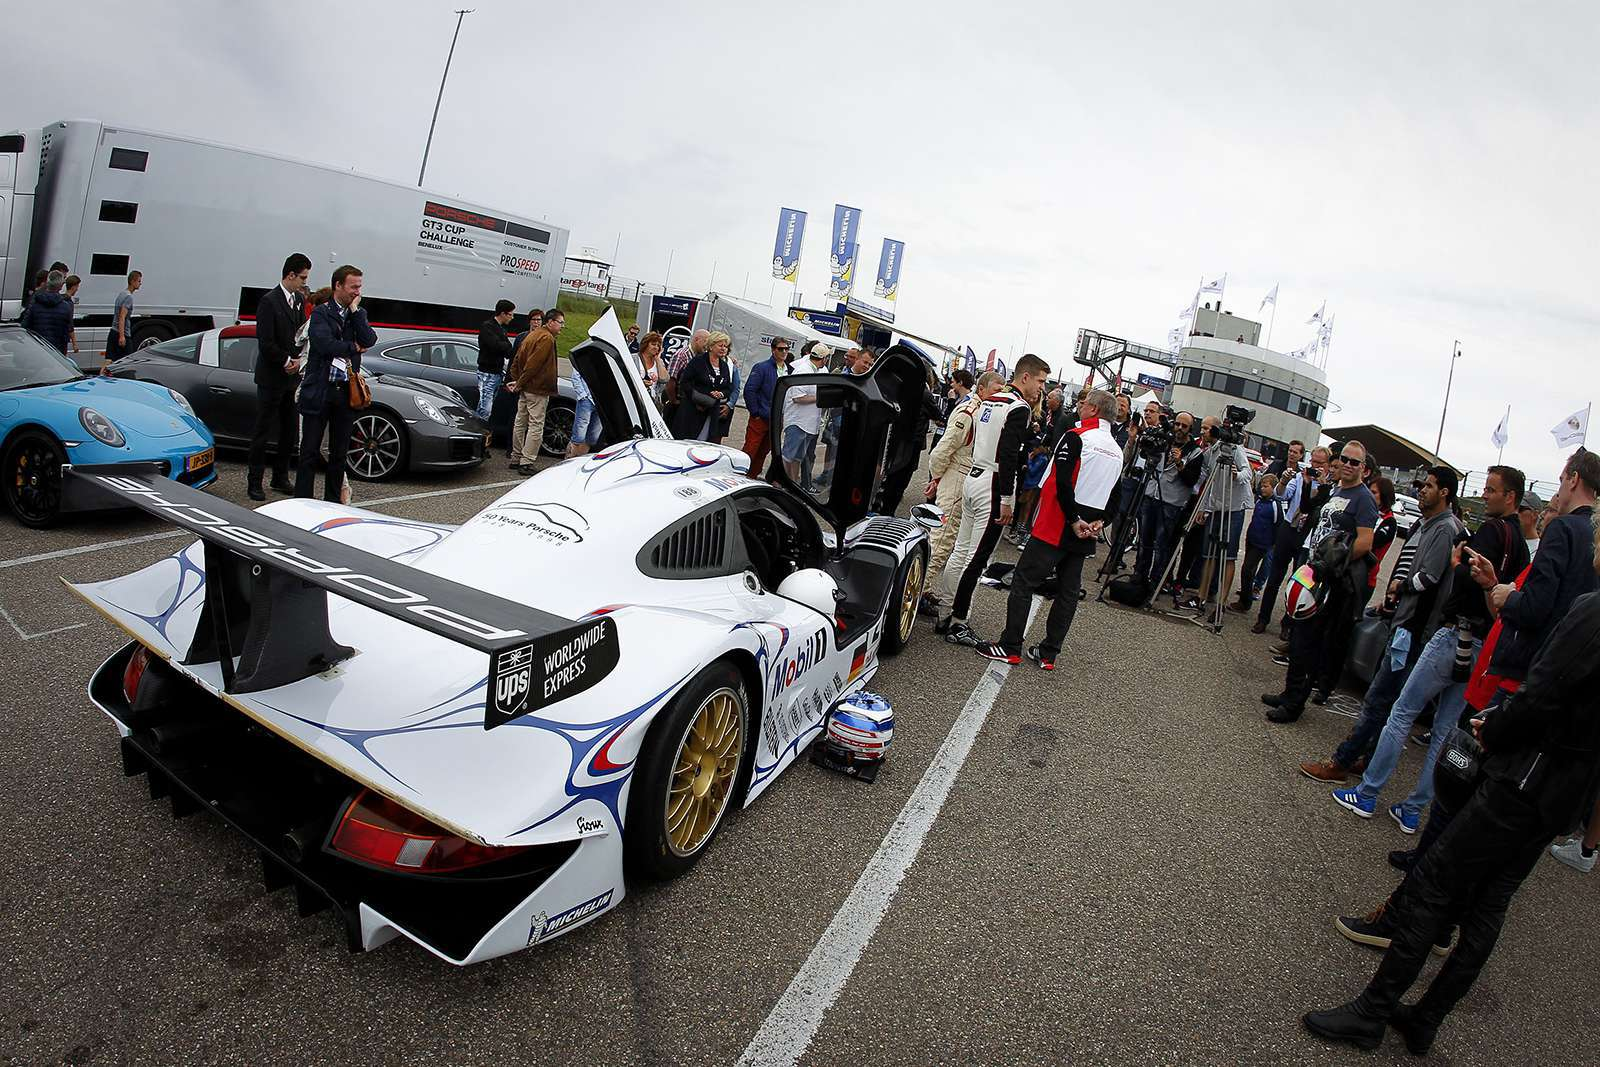 special-demonstrations-included-1998-911-GT1